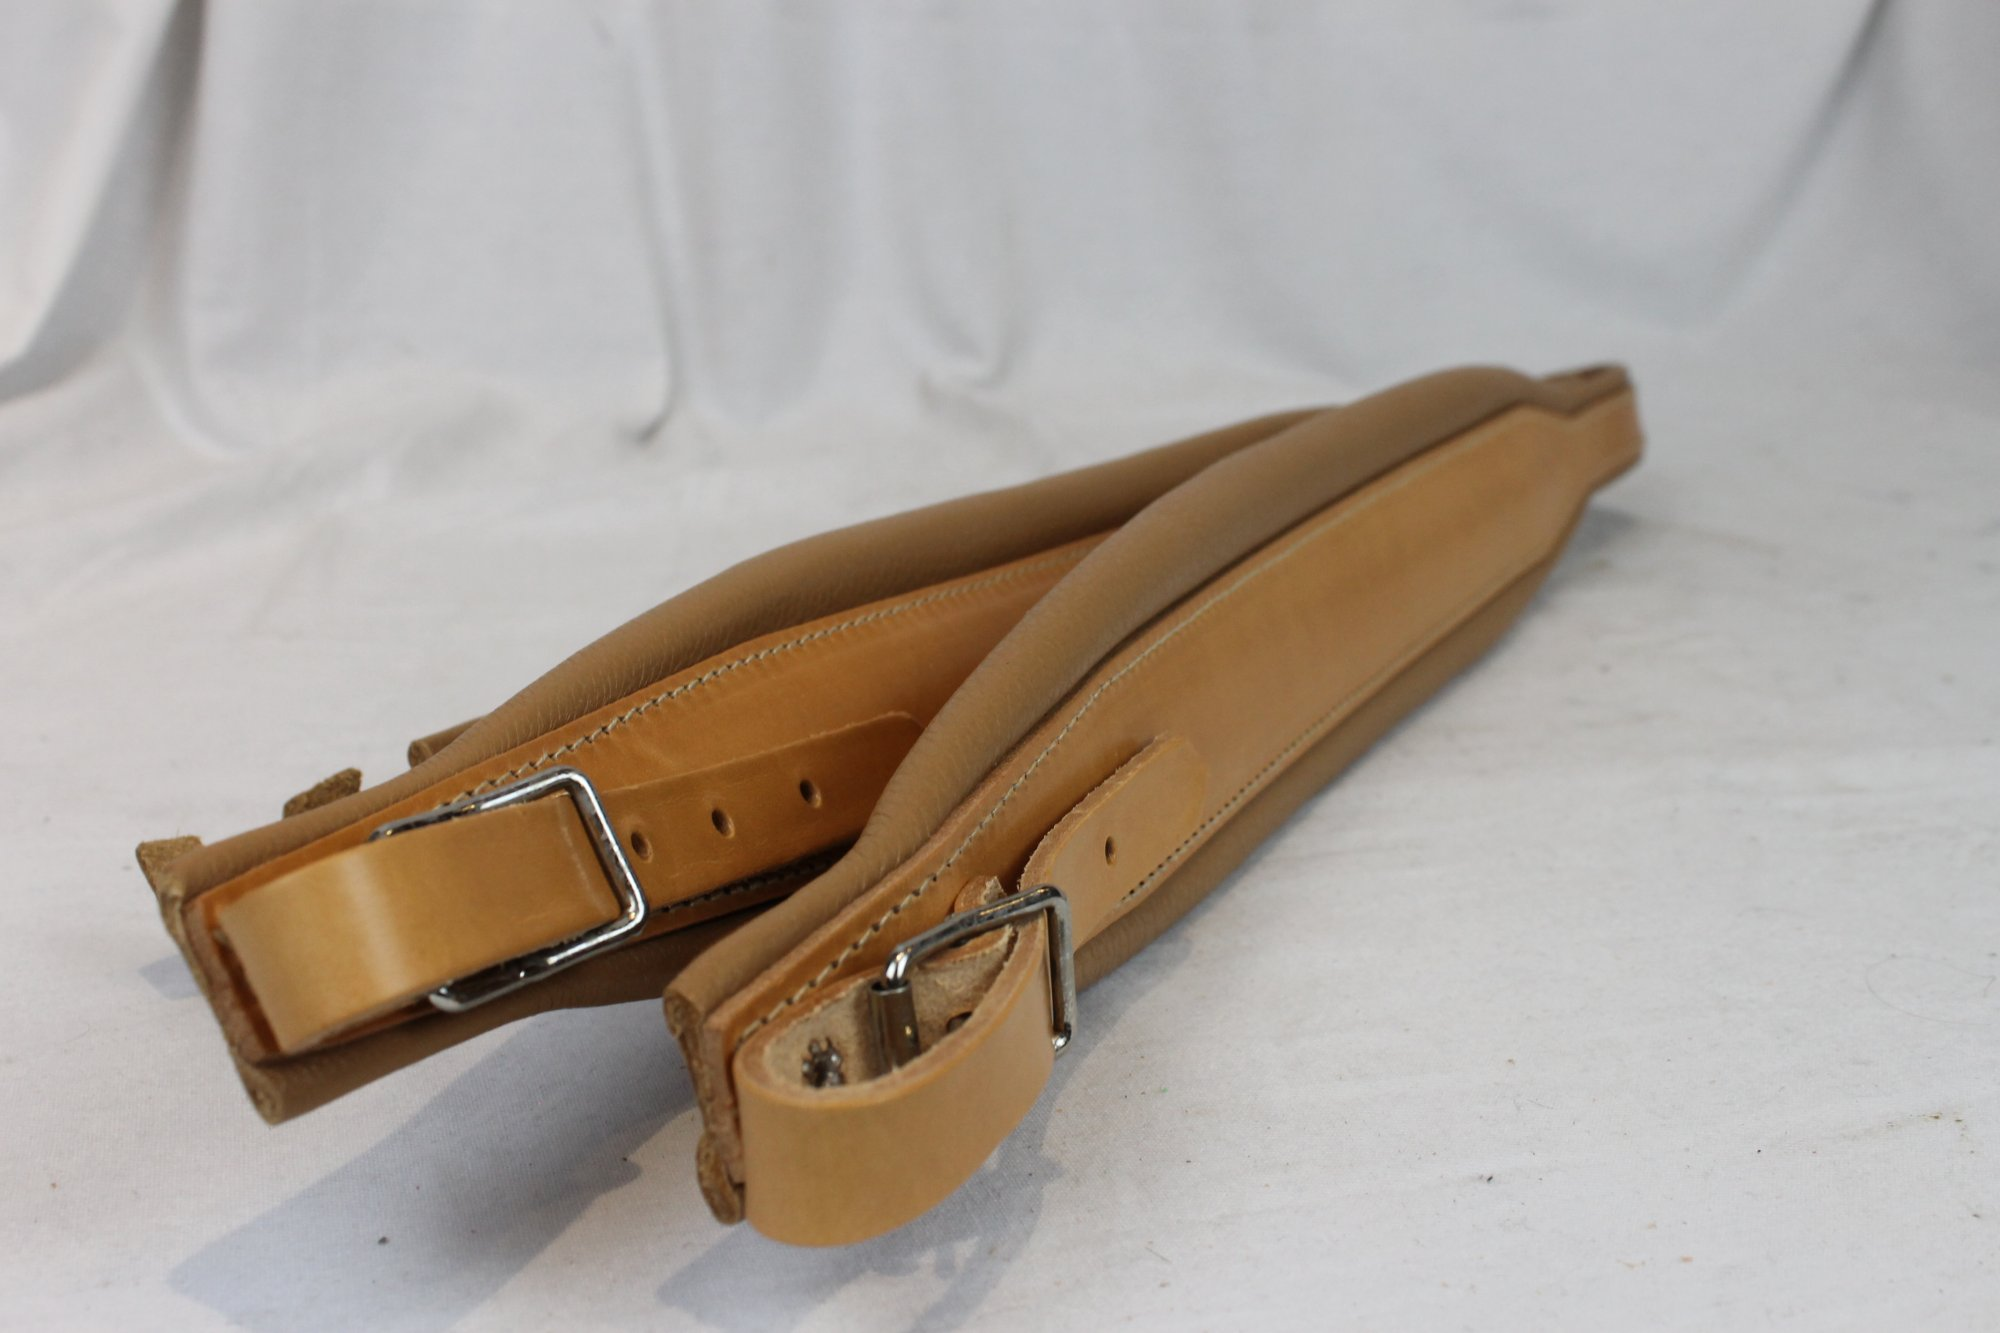 New Tan Leather Pelle Fuselli Accordion Shoulder Straps Width (7cm / 2.8in) Length (85~105cm / 33.5~41.3in)